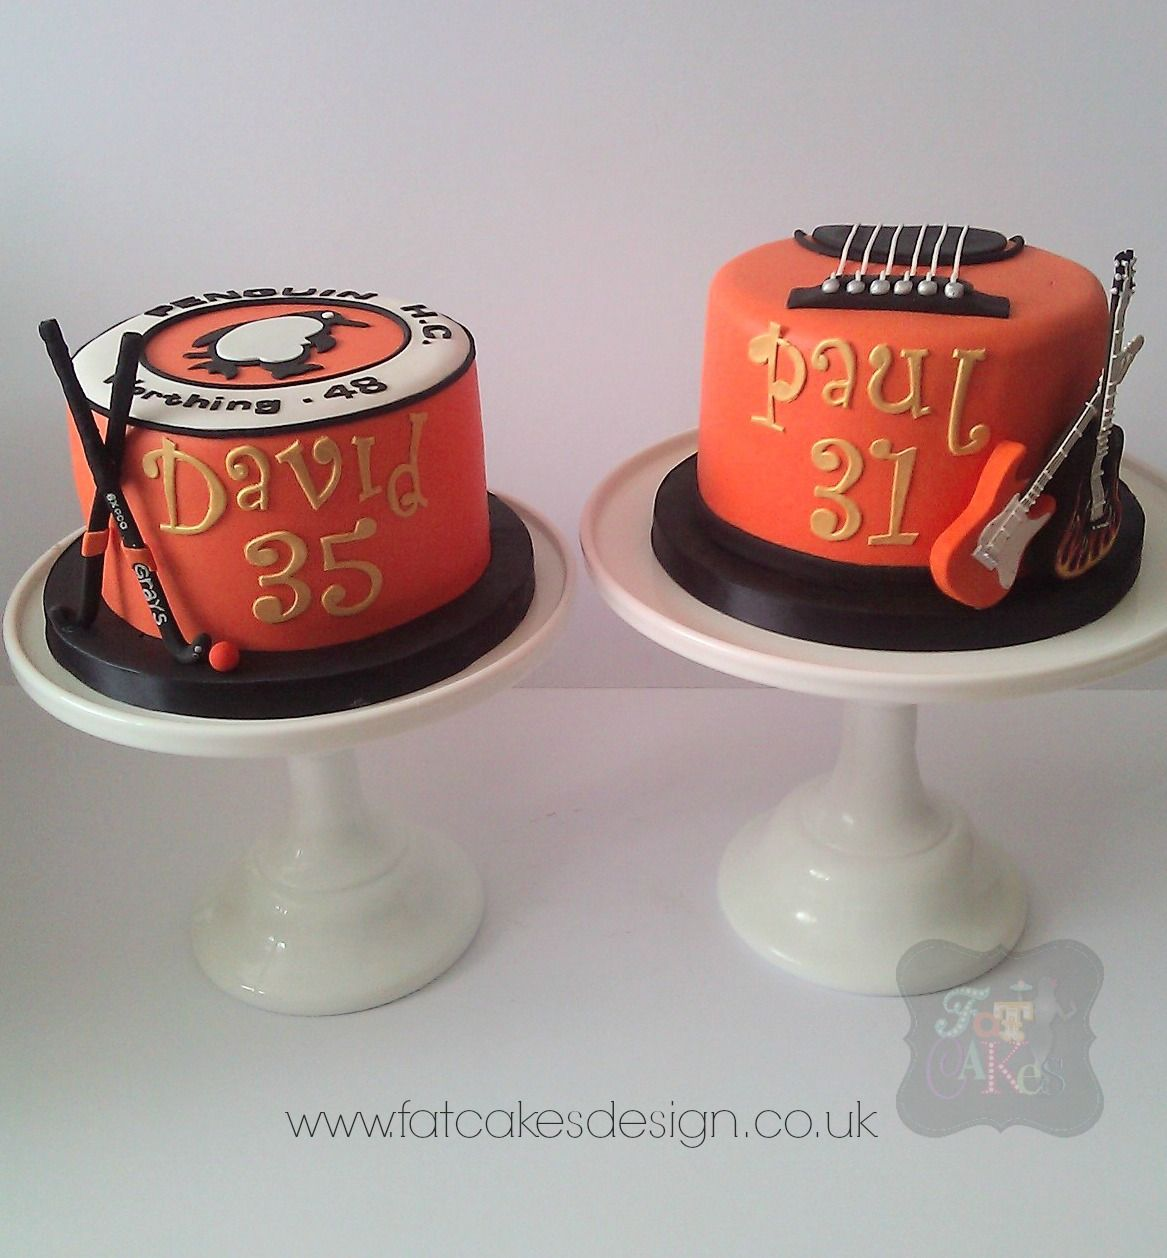 Matching birthday cakes for joint birthday celebration Orange cakes